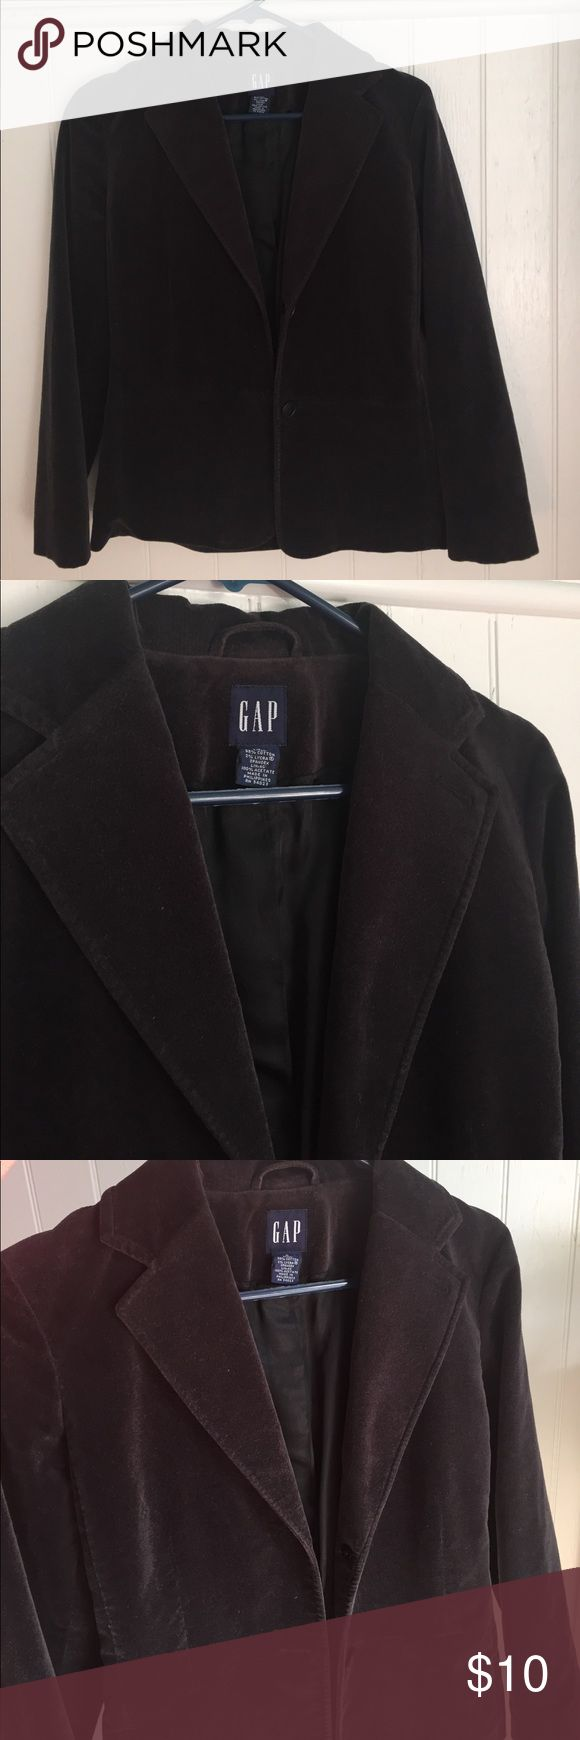 GAP black velvet blazer GAP black velvet blazer.  Two button front. Notched lapel.  Amazing with jeans for a night out.  Vented back. GAP Jackets & Coats Blazers